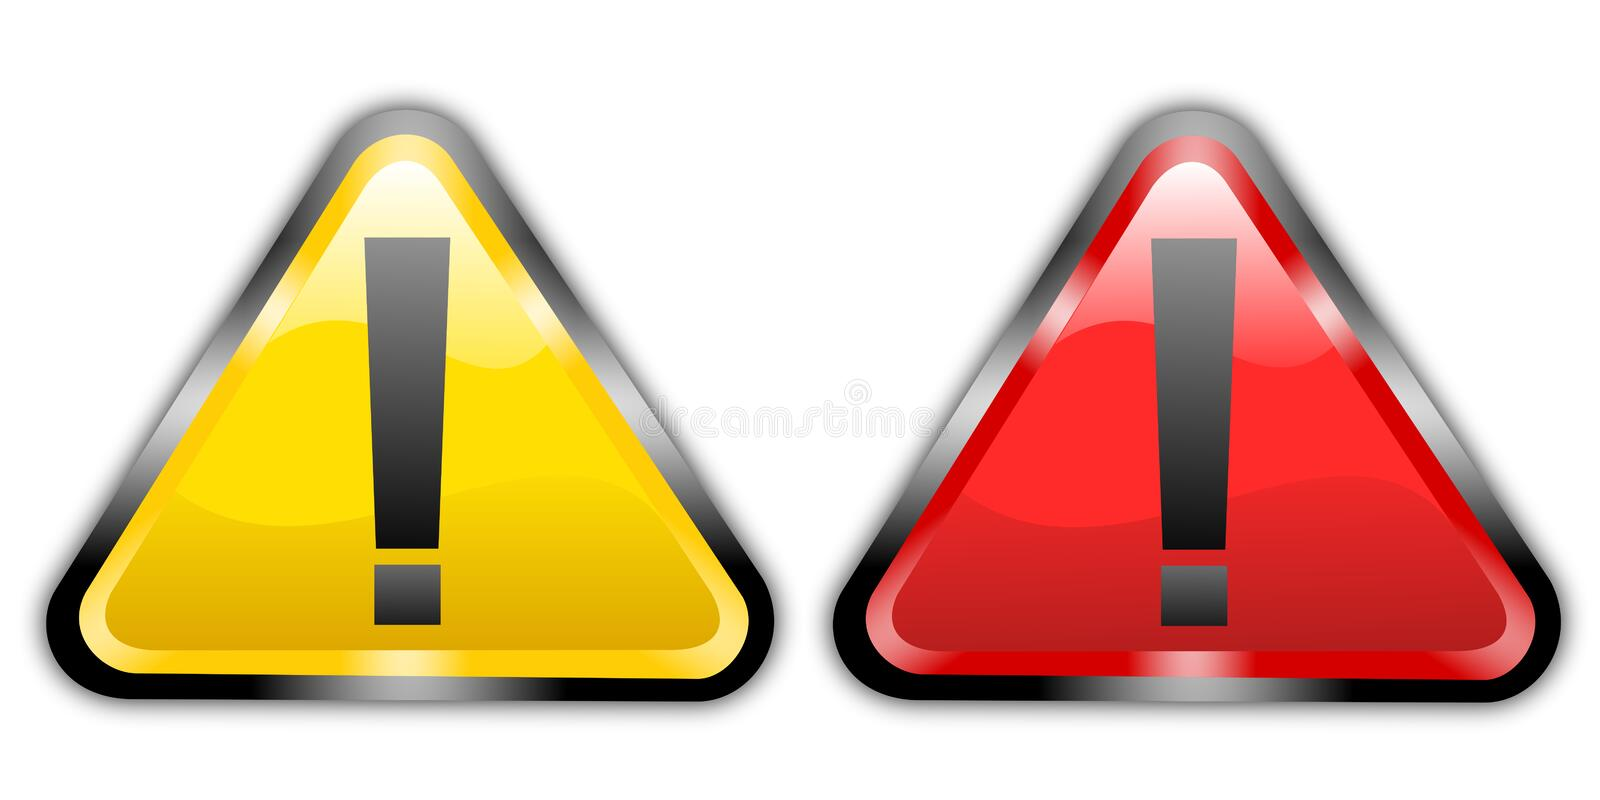 Warning sign vector illustration